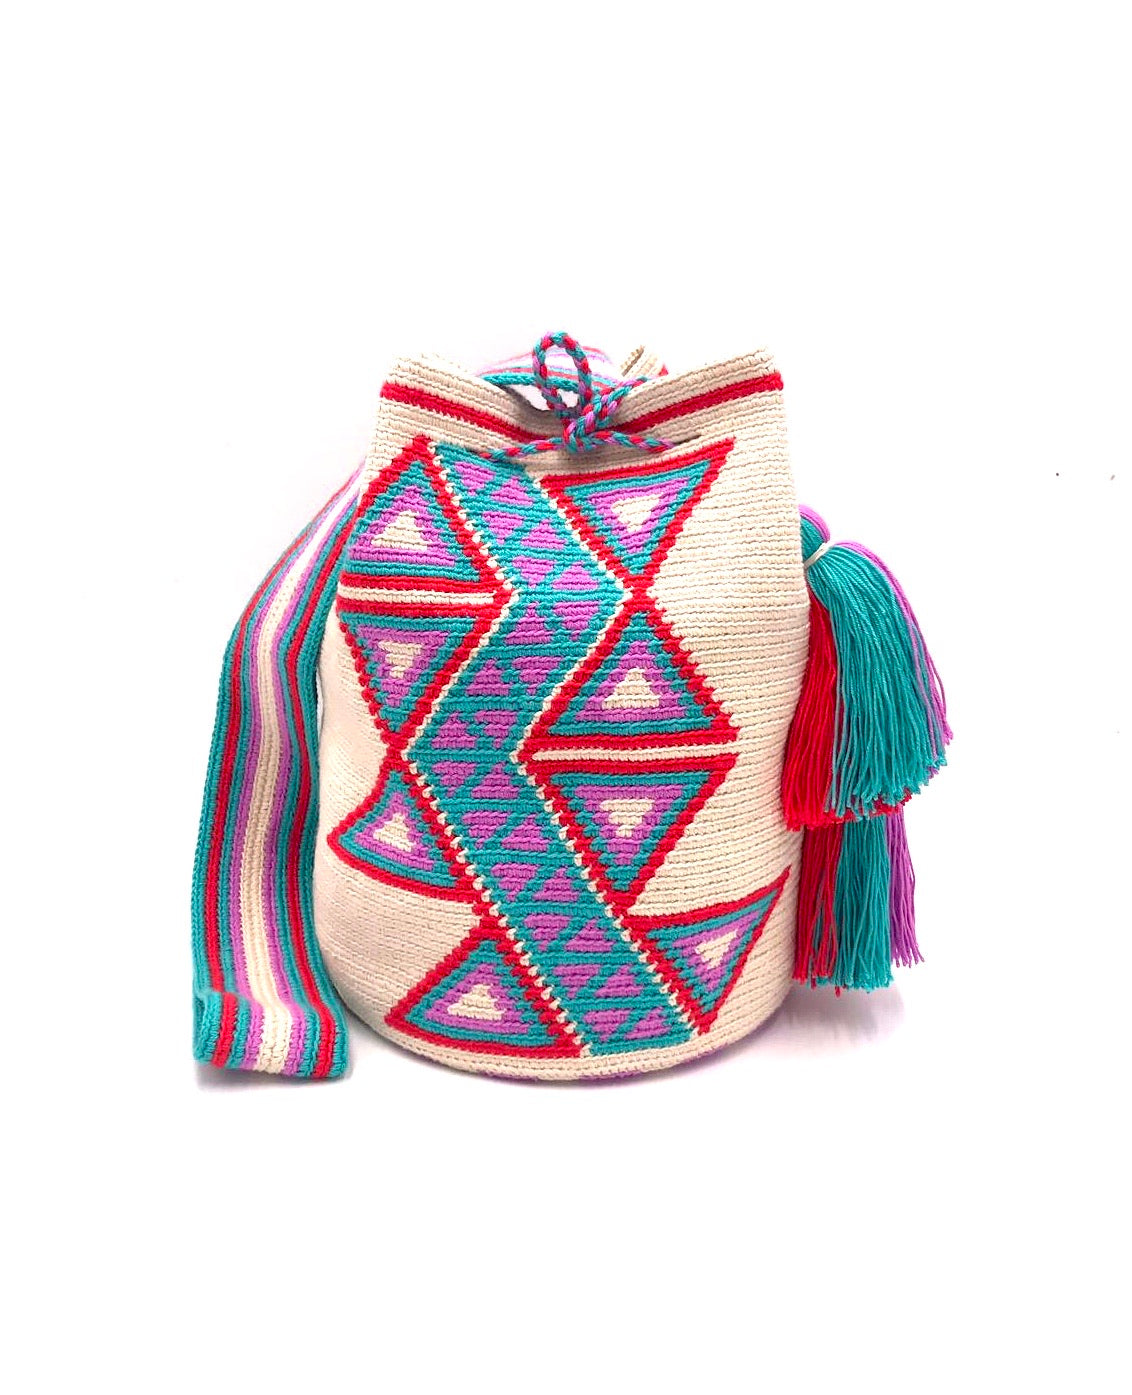 Cream color bag, central red and turquoise triangles with central turquoise sequence with little purple triangles and 2 tassels.